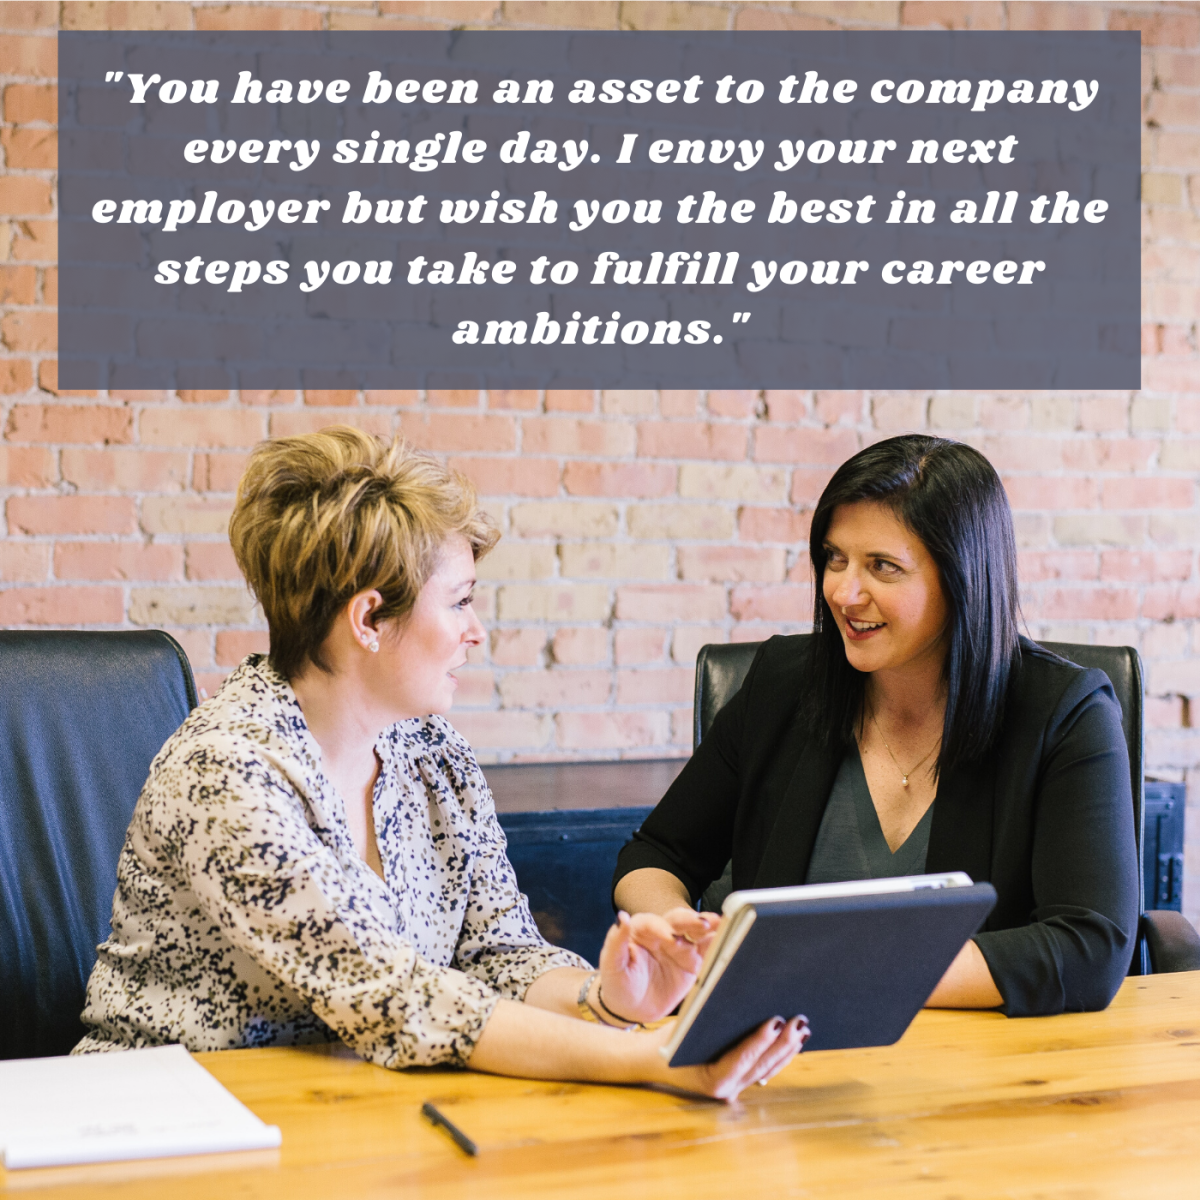 """""""You have been an asset to the company every single day. I envy your next employer but wish you the best in all the steps you take to fulfill your career ambitions."""""""